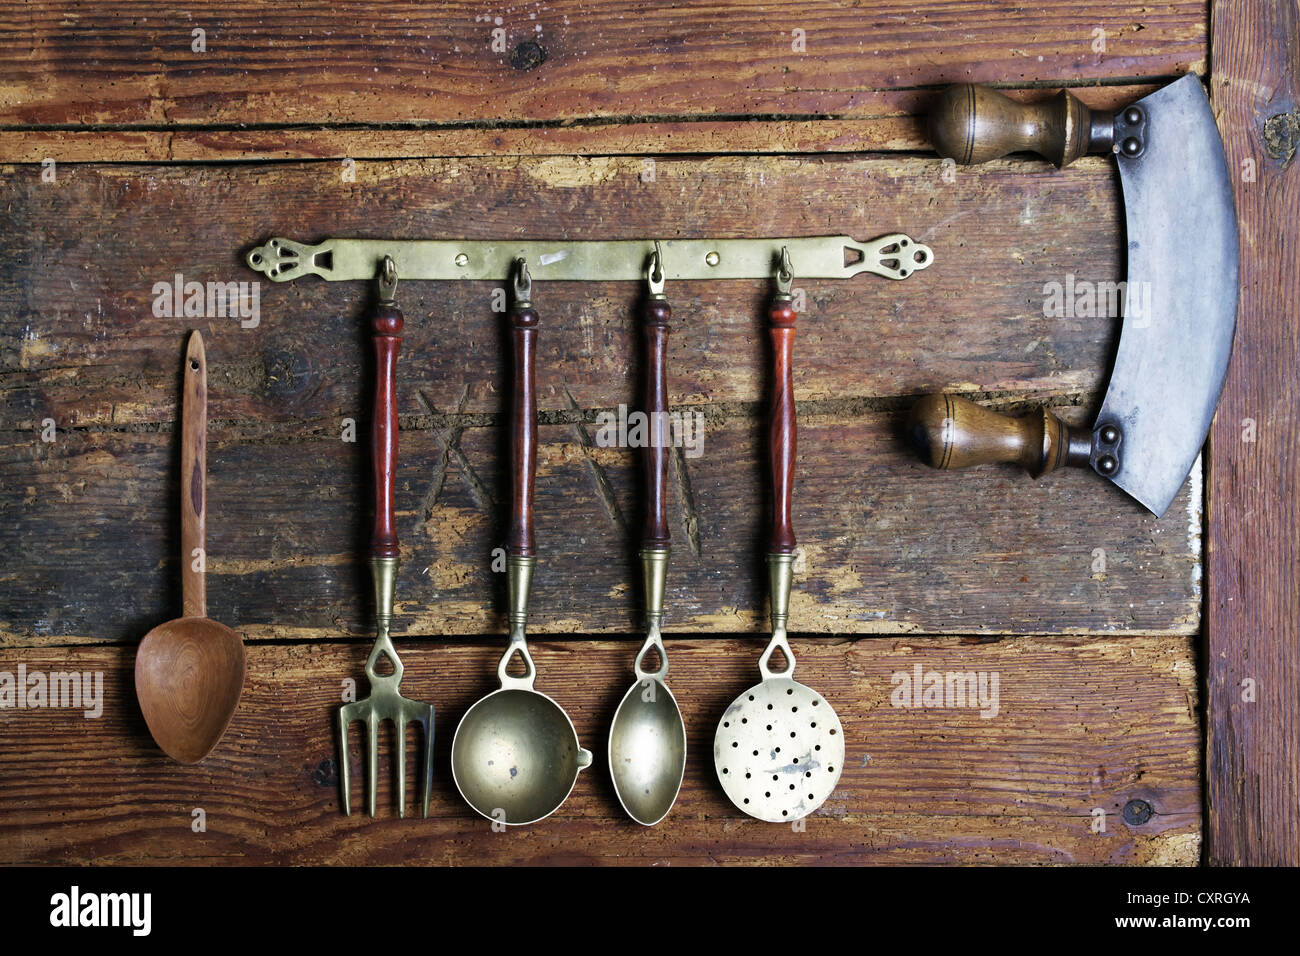 Old Kitchen Utensils Made Of Brass Hanging From A Bar In Front Of A Rustic  Wooden